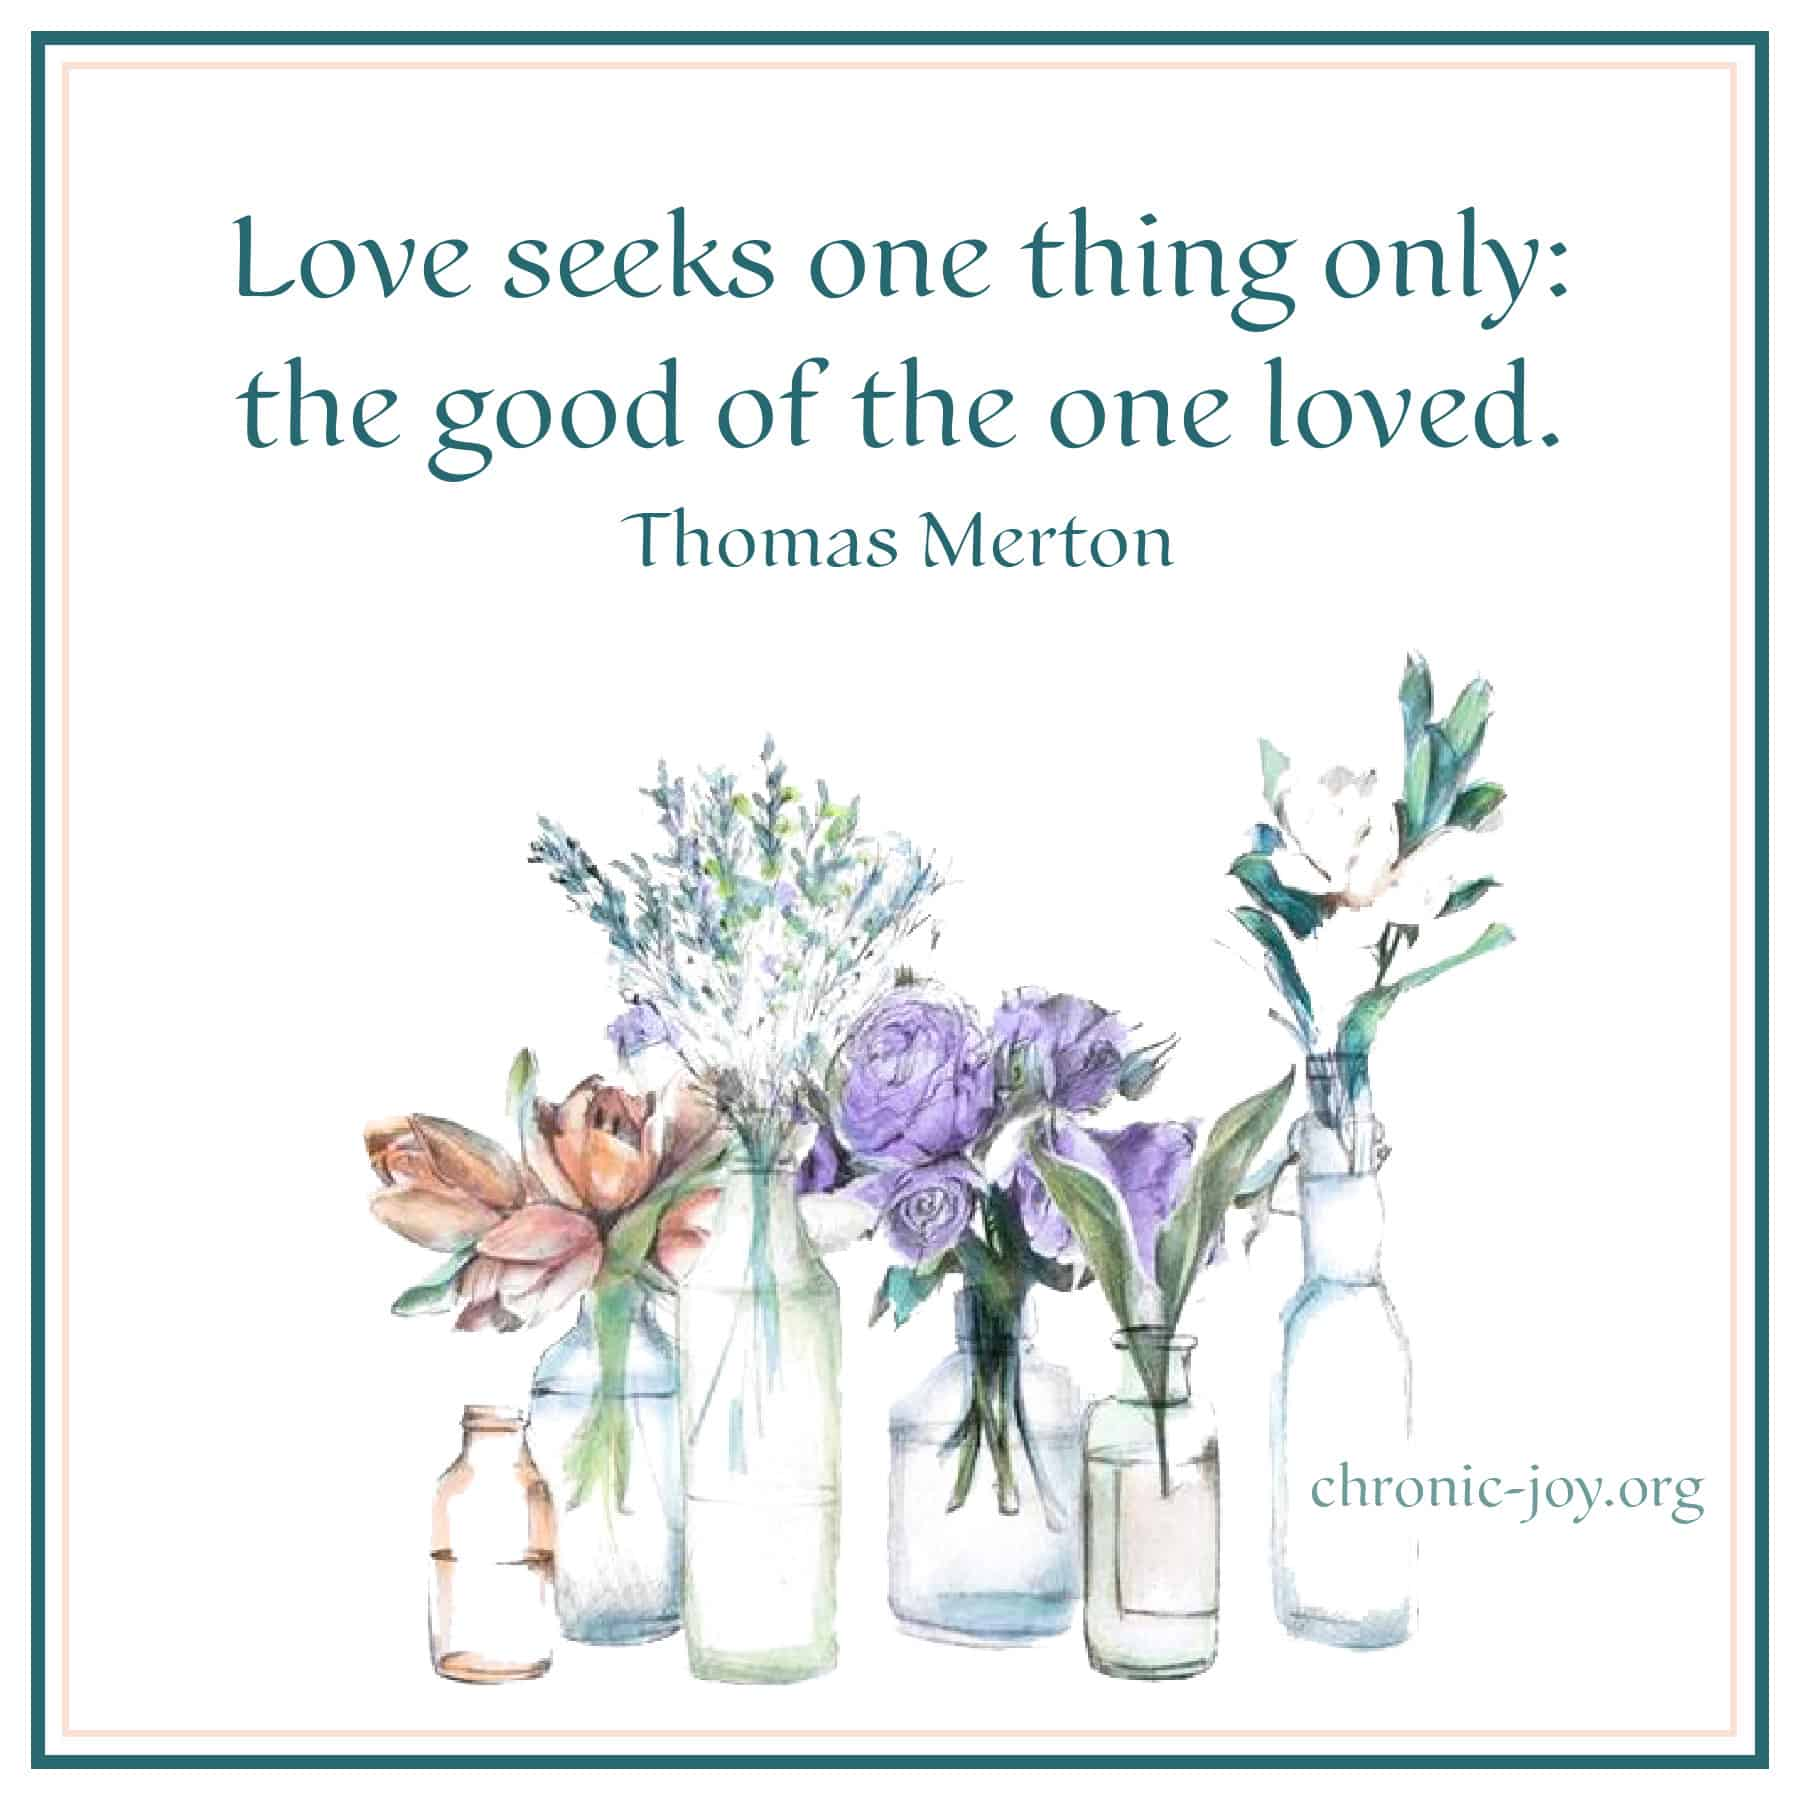 Love seeks one thing only: the good of the one loved.